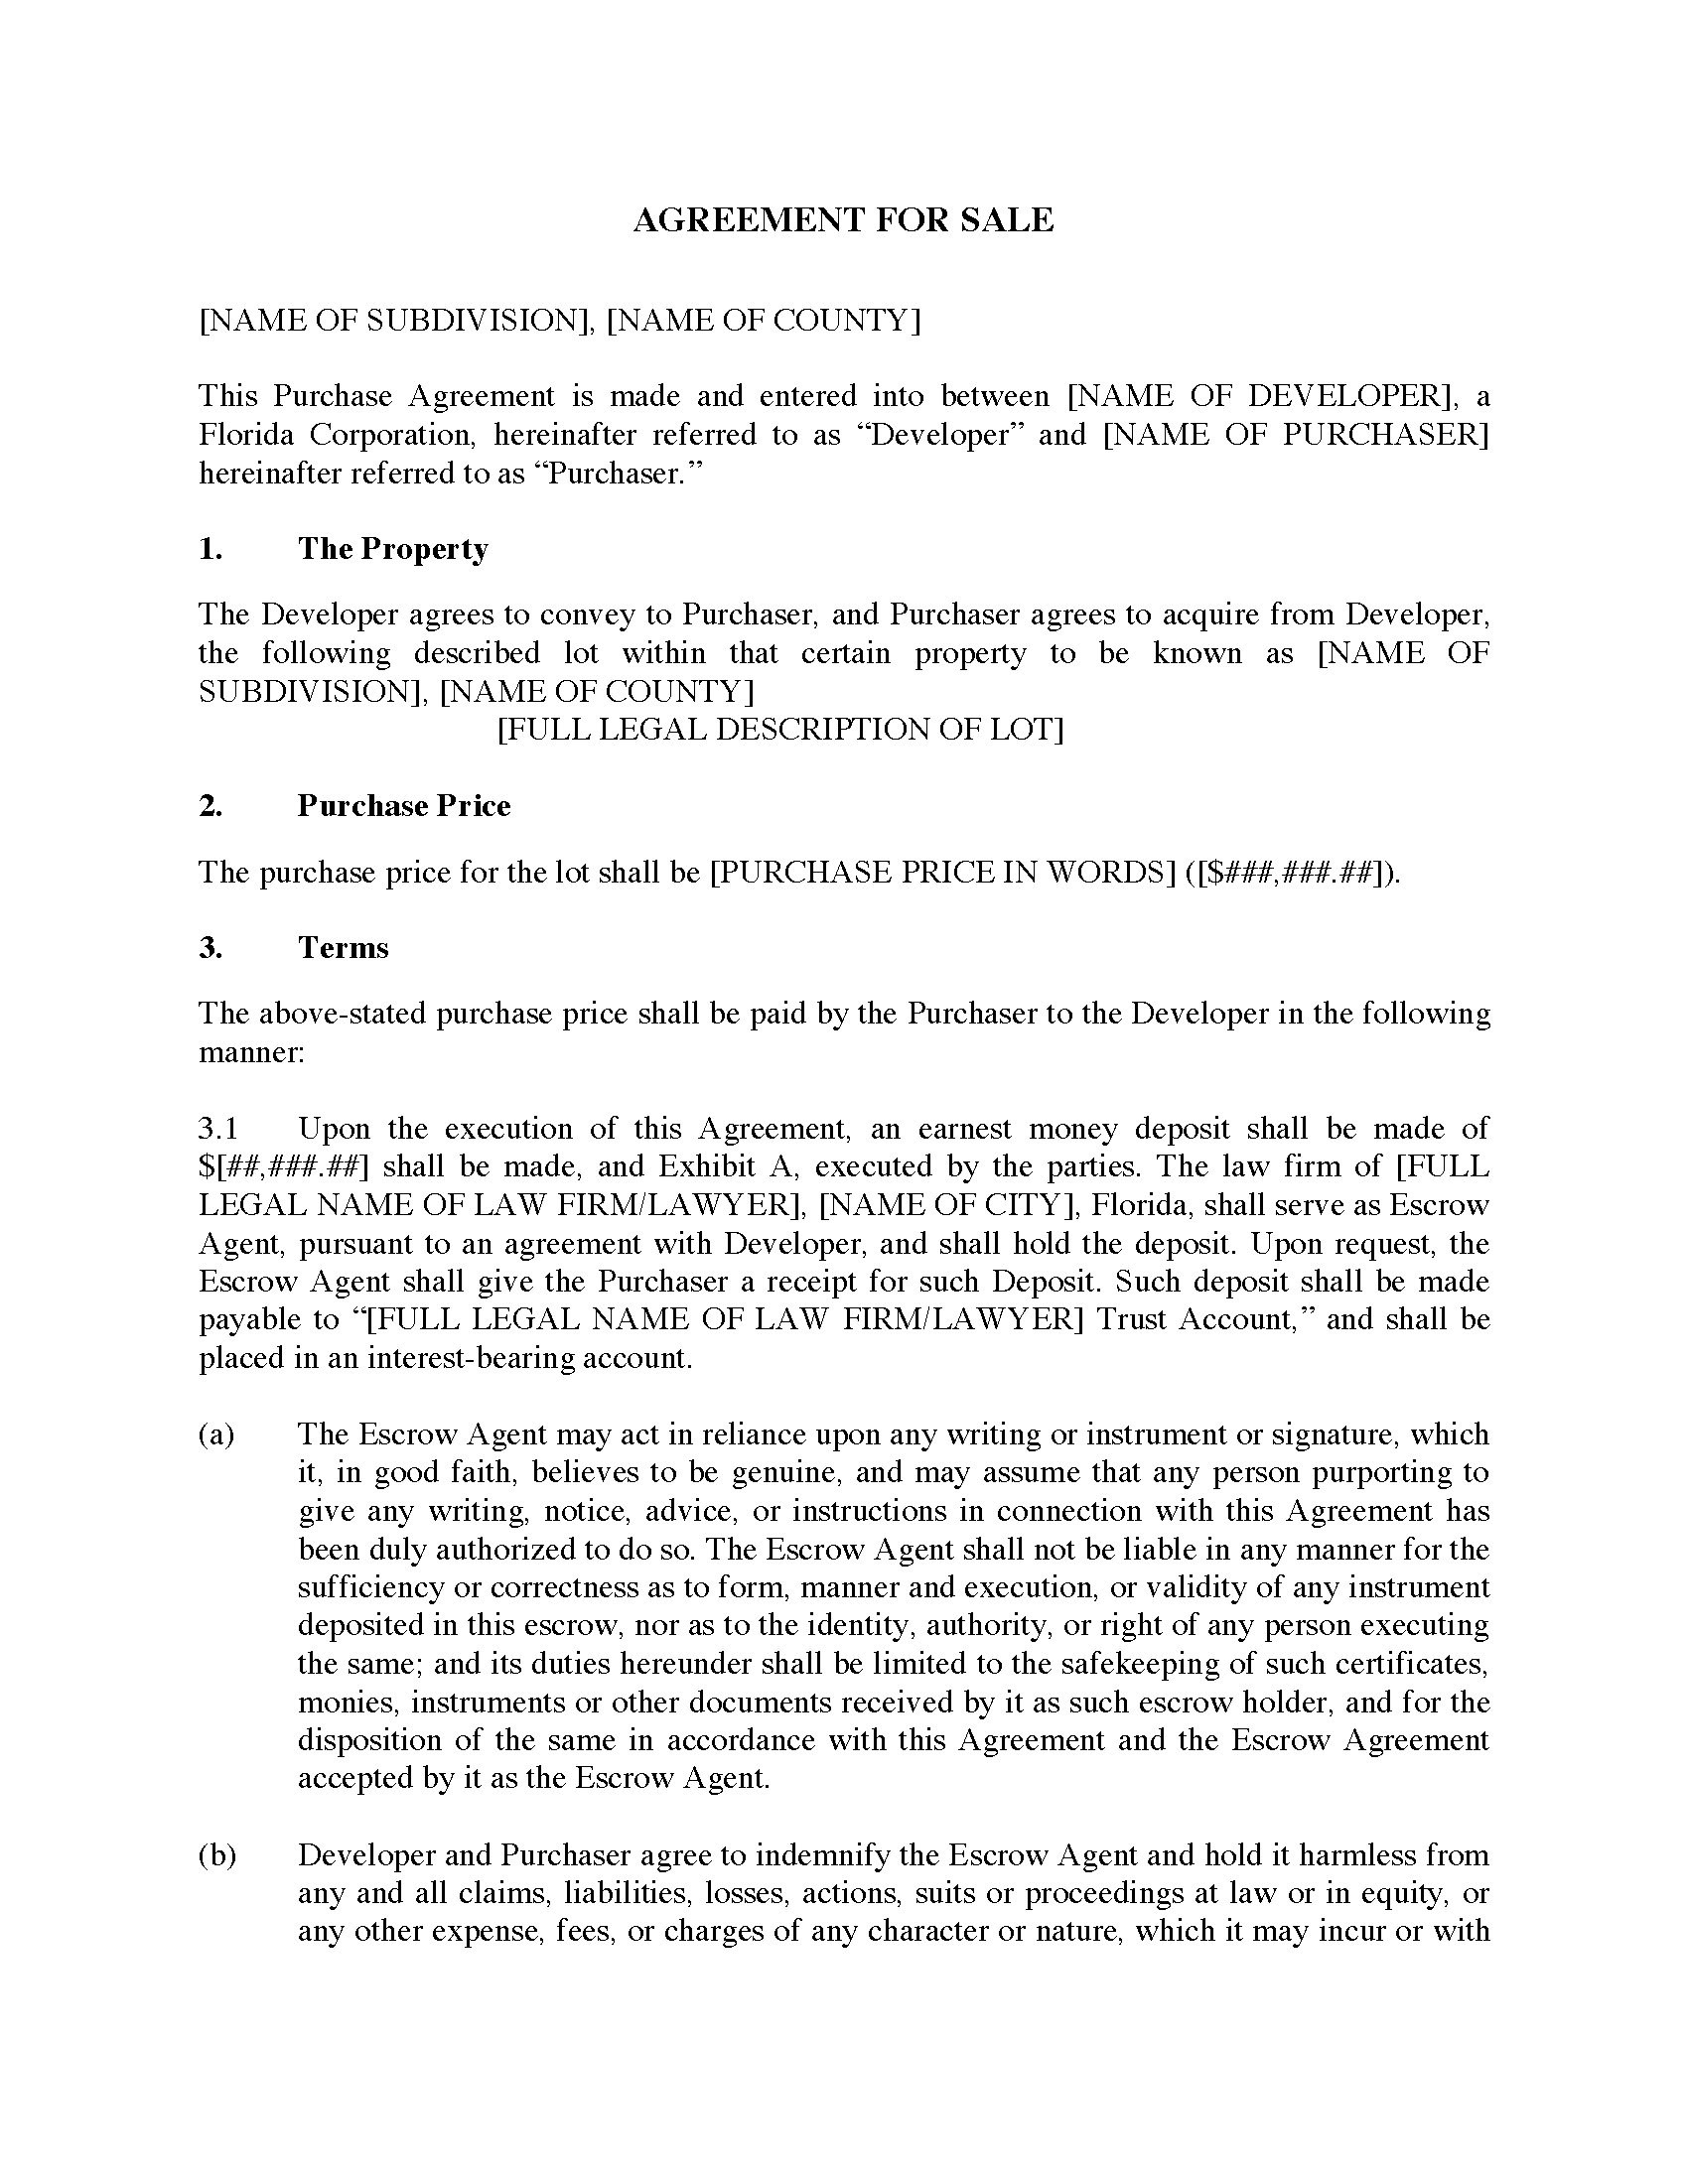 Florida Agreement For Sale By Real Estate Developer Legal Forms And Business Templates Florida Real Estate Purchase And Sale Agreement Form